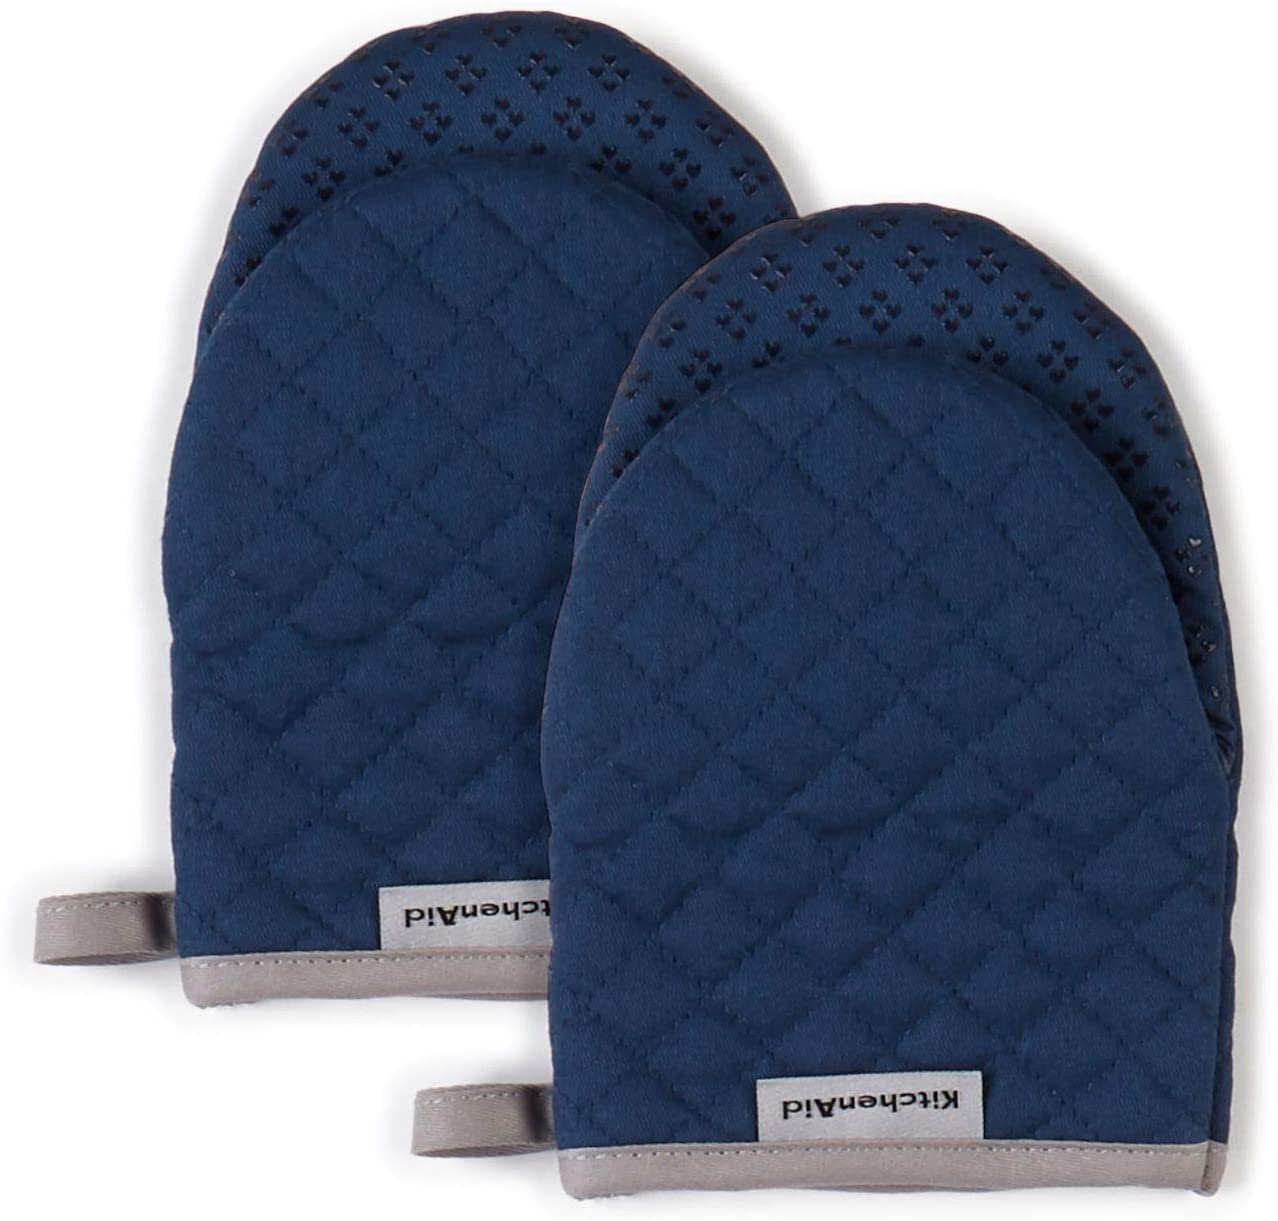 KitchenAid Asteroid Mini Cotton Oven Mitts with Silicone Grip, Set of 2, Blue